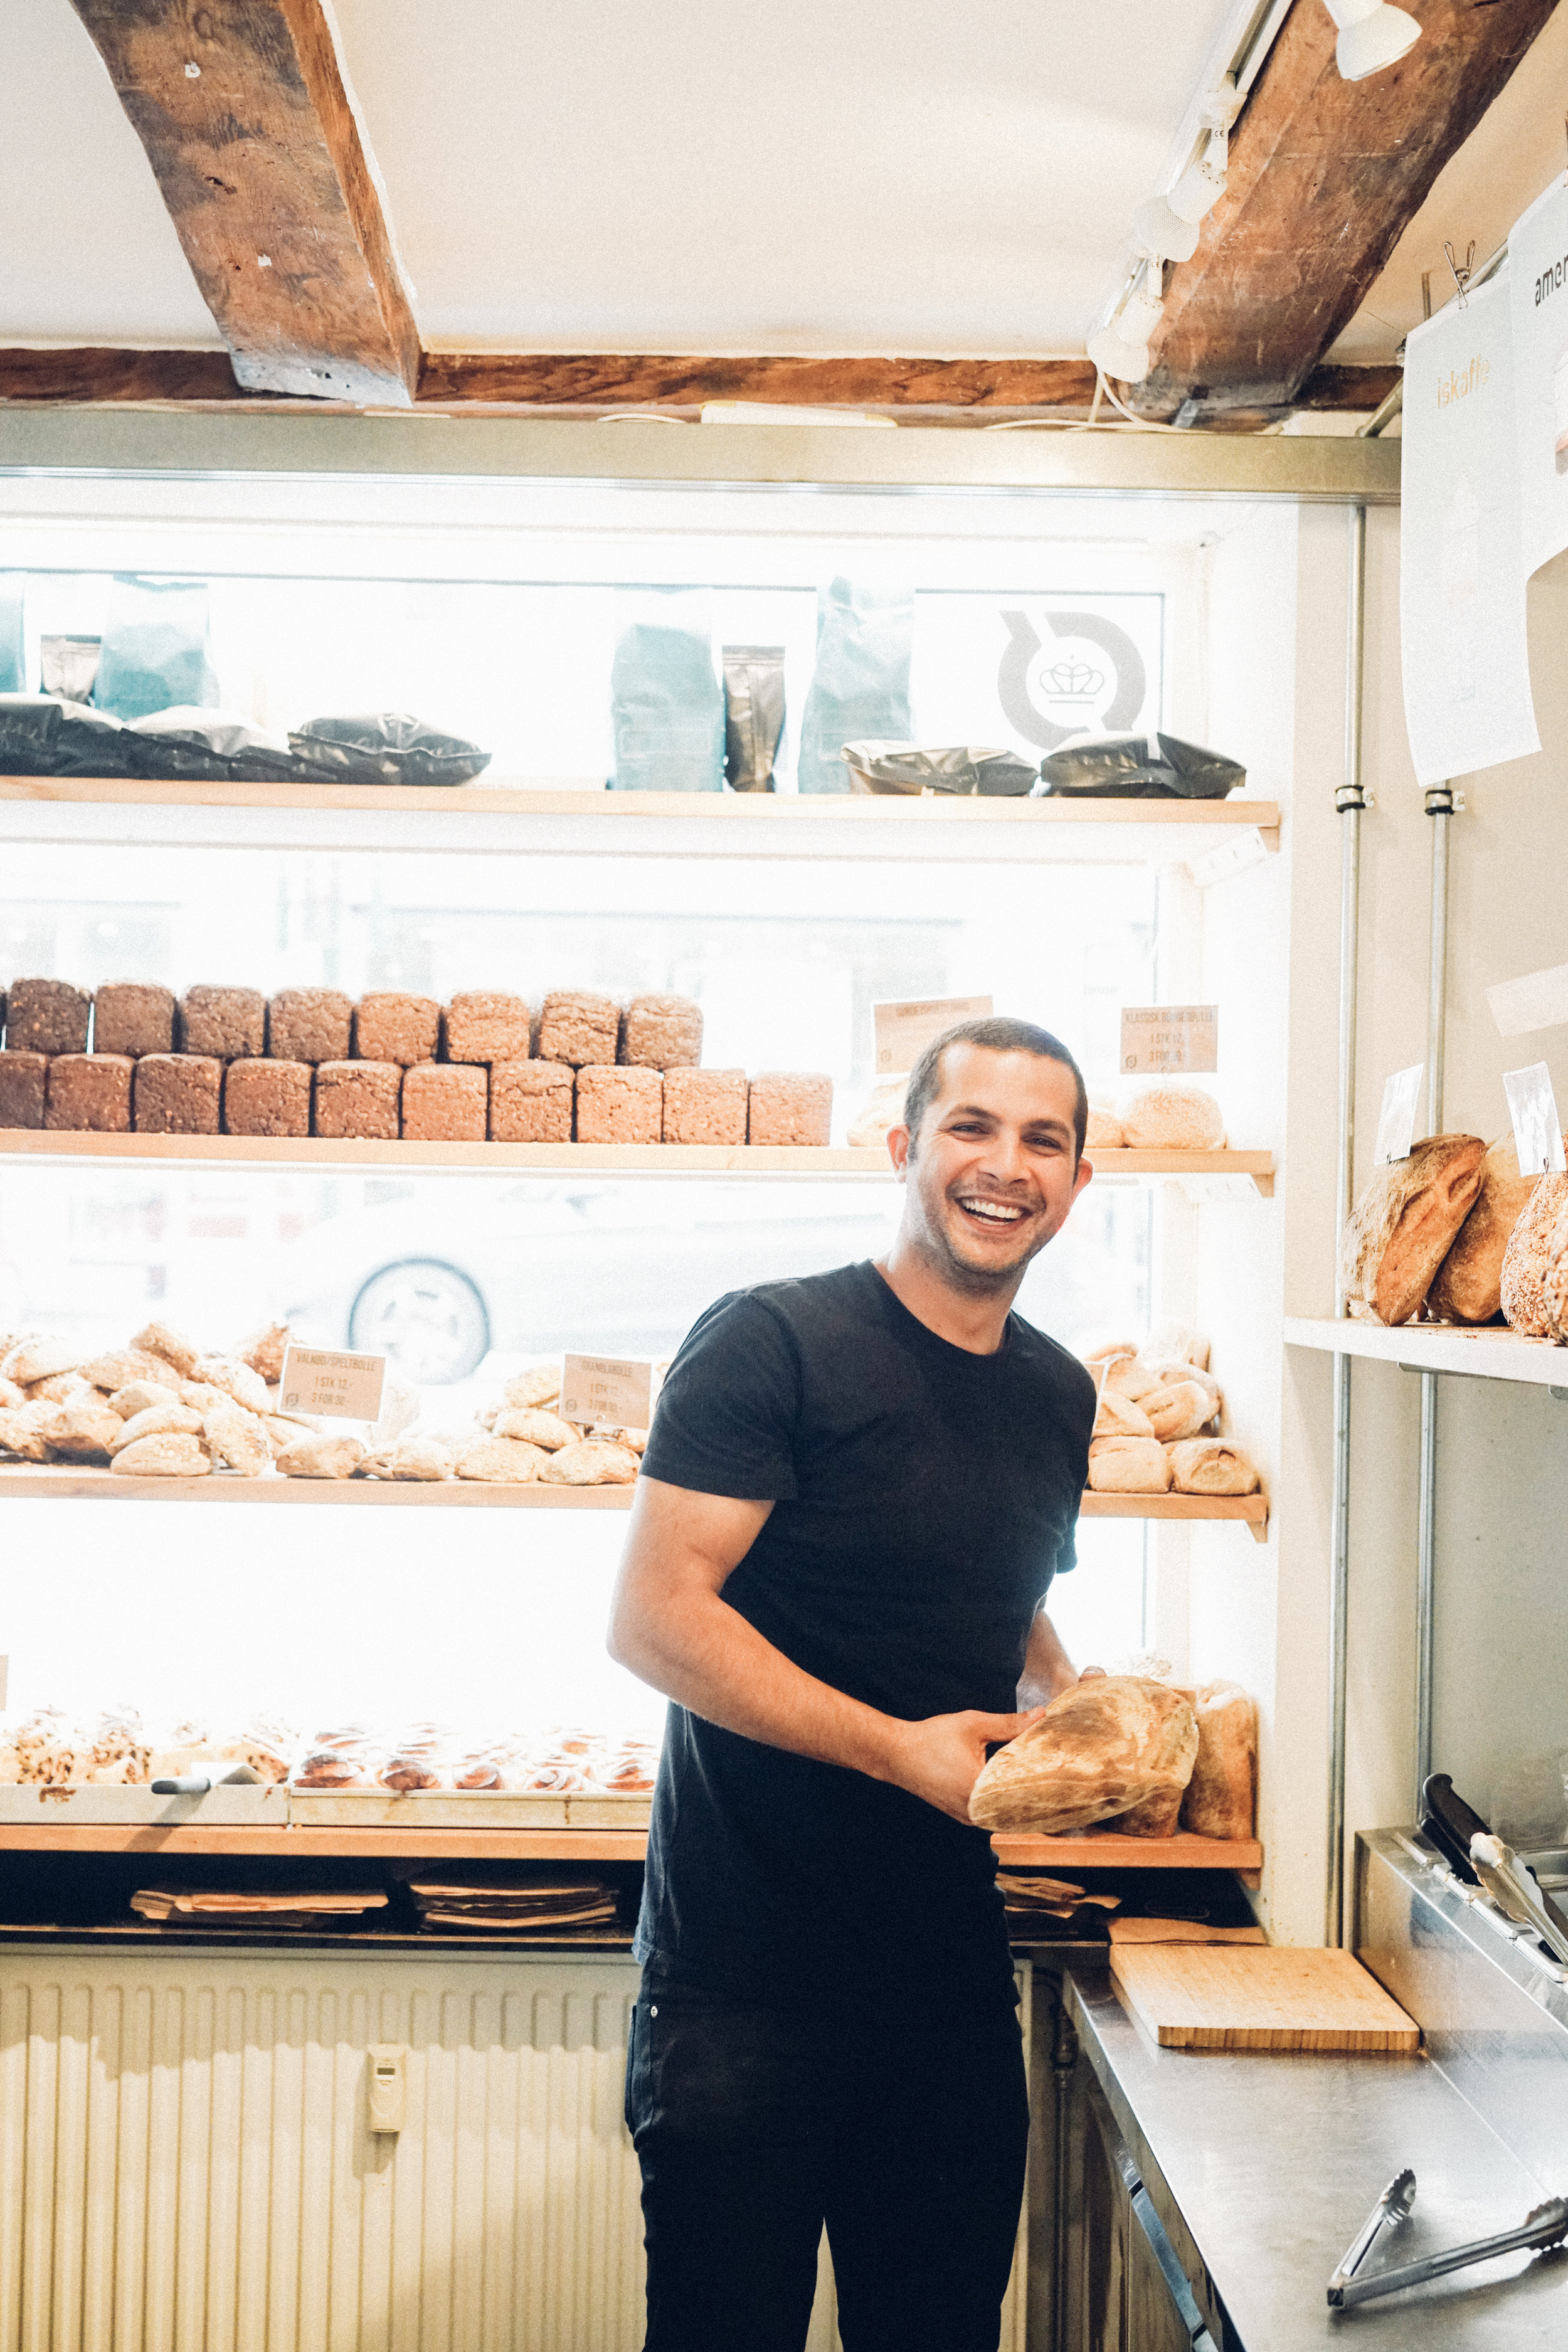 Martin Daniali holding a loaf of bread